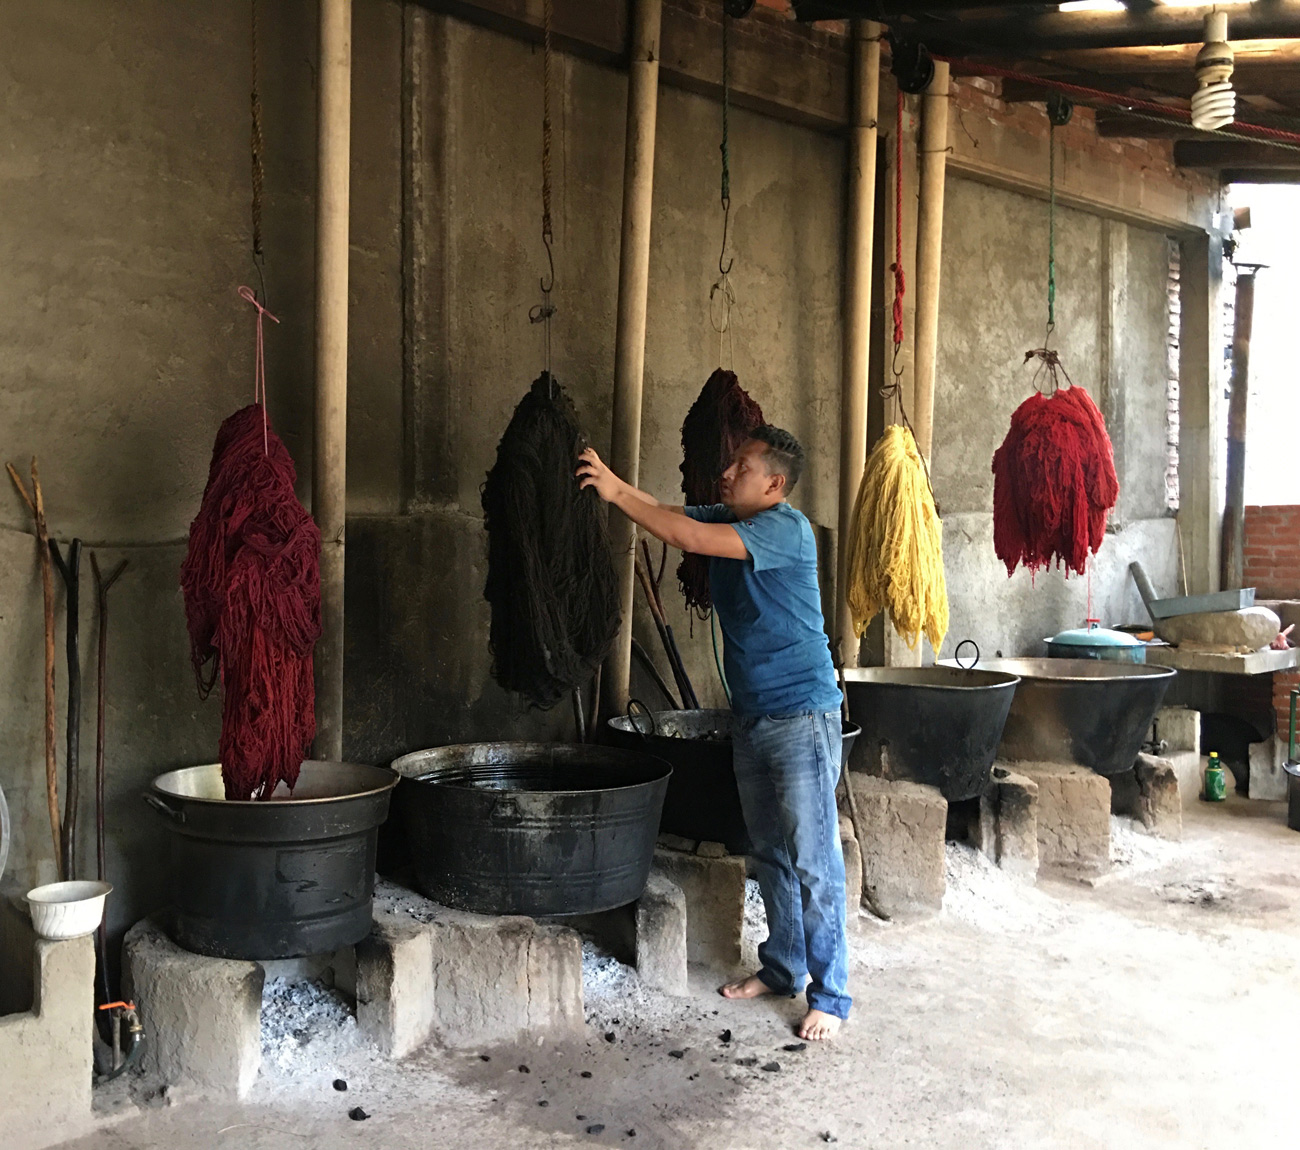 Man standing in large open space with clumps of yarn in different colors hanging over large tubs